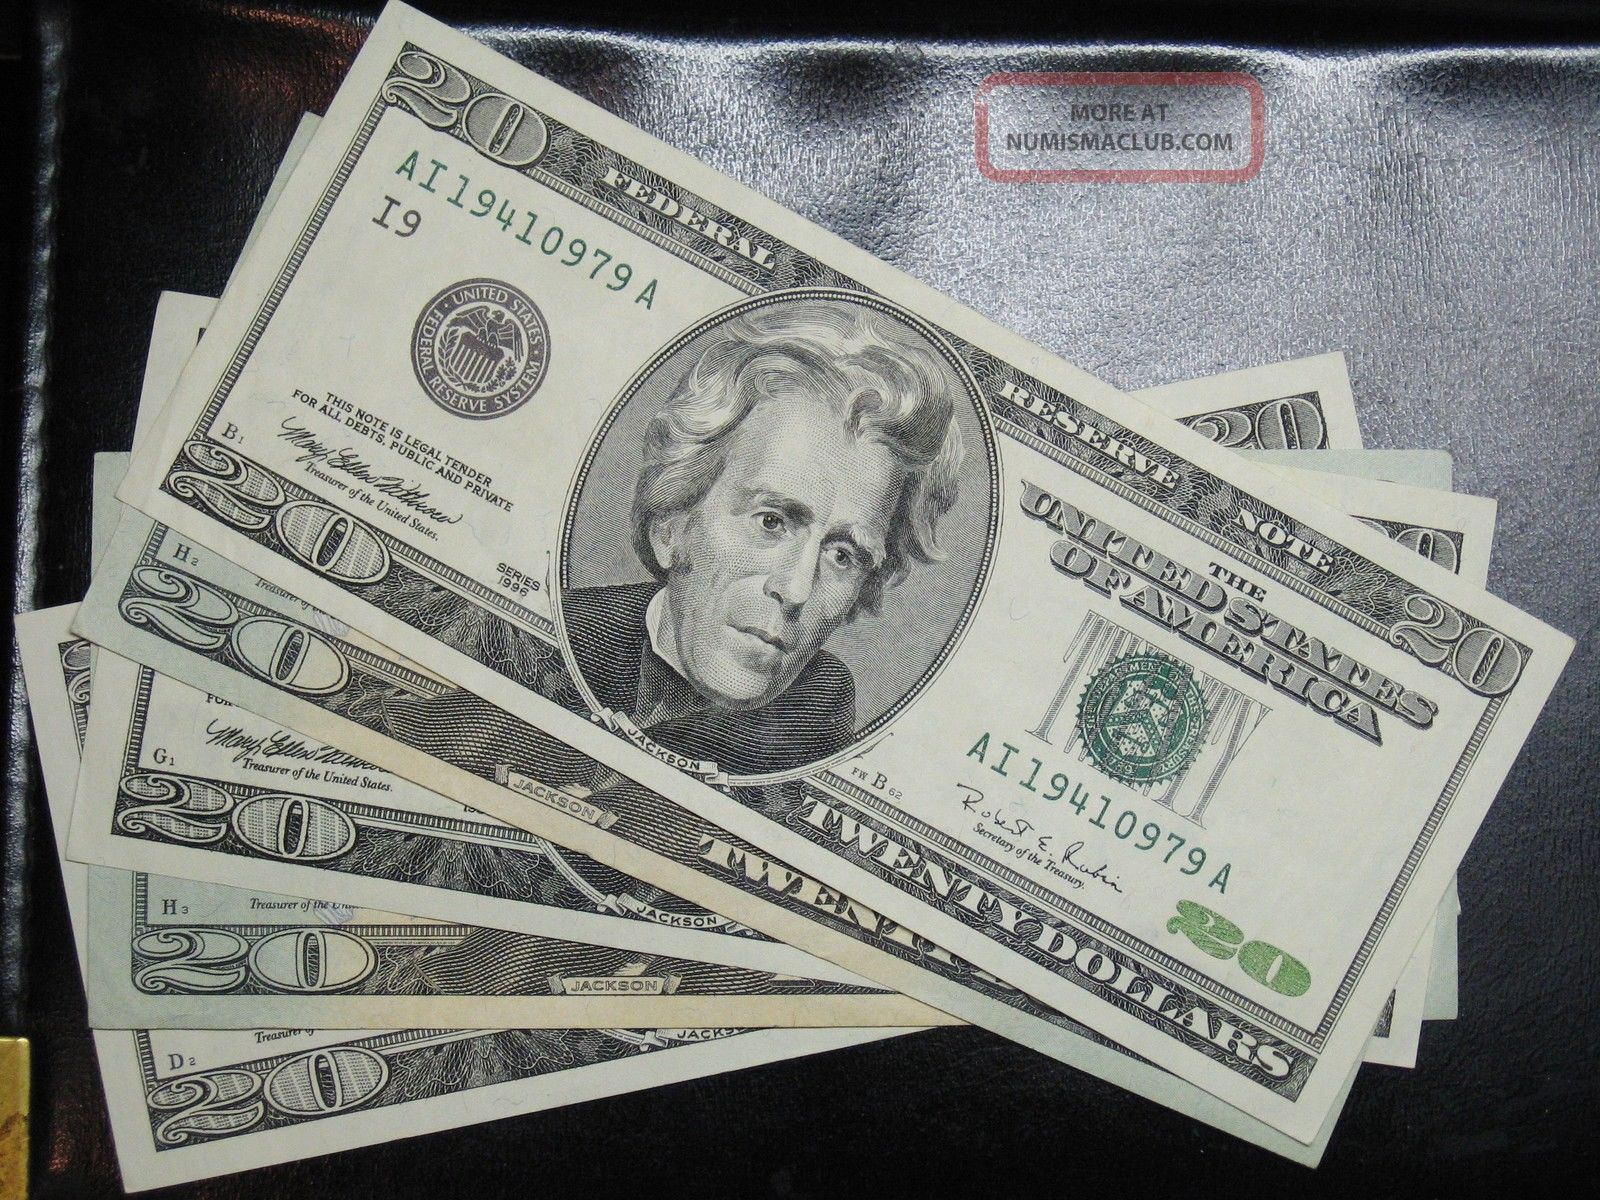 1996 1999 2001 2004 2006 $20 Dollar Federal Reserve Notes As